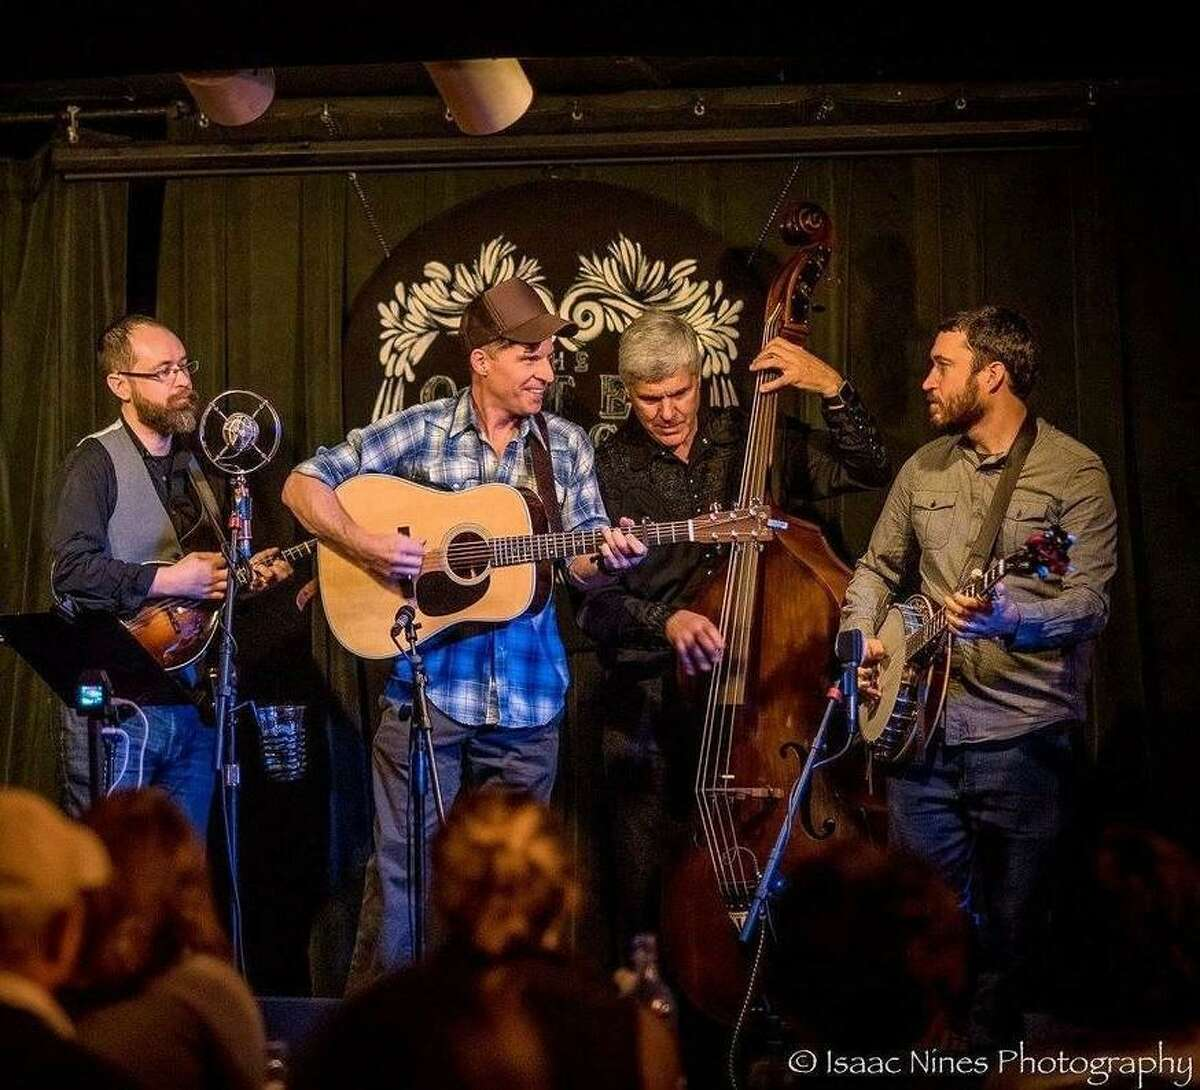 Five 'n Change, a New Haven-based bluegrass band, is performing June 25 at the Torrington Historical Society on the grounds.